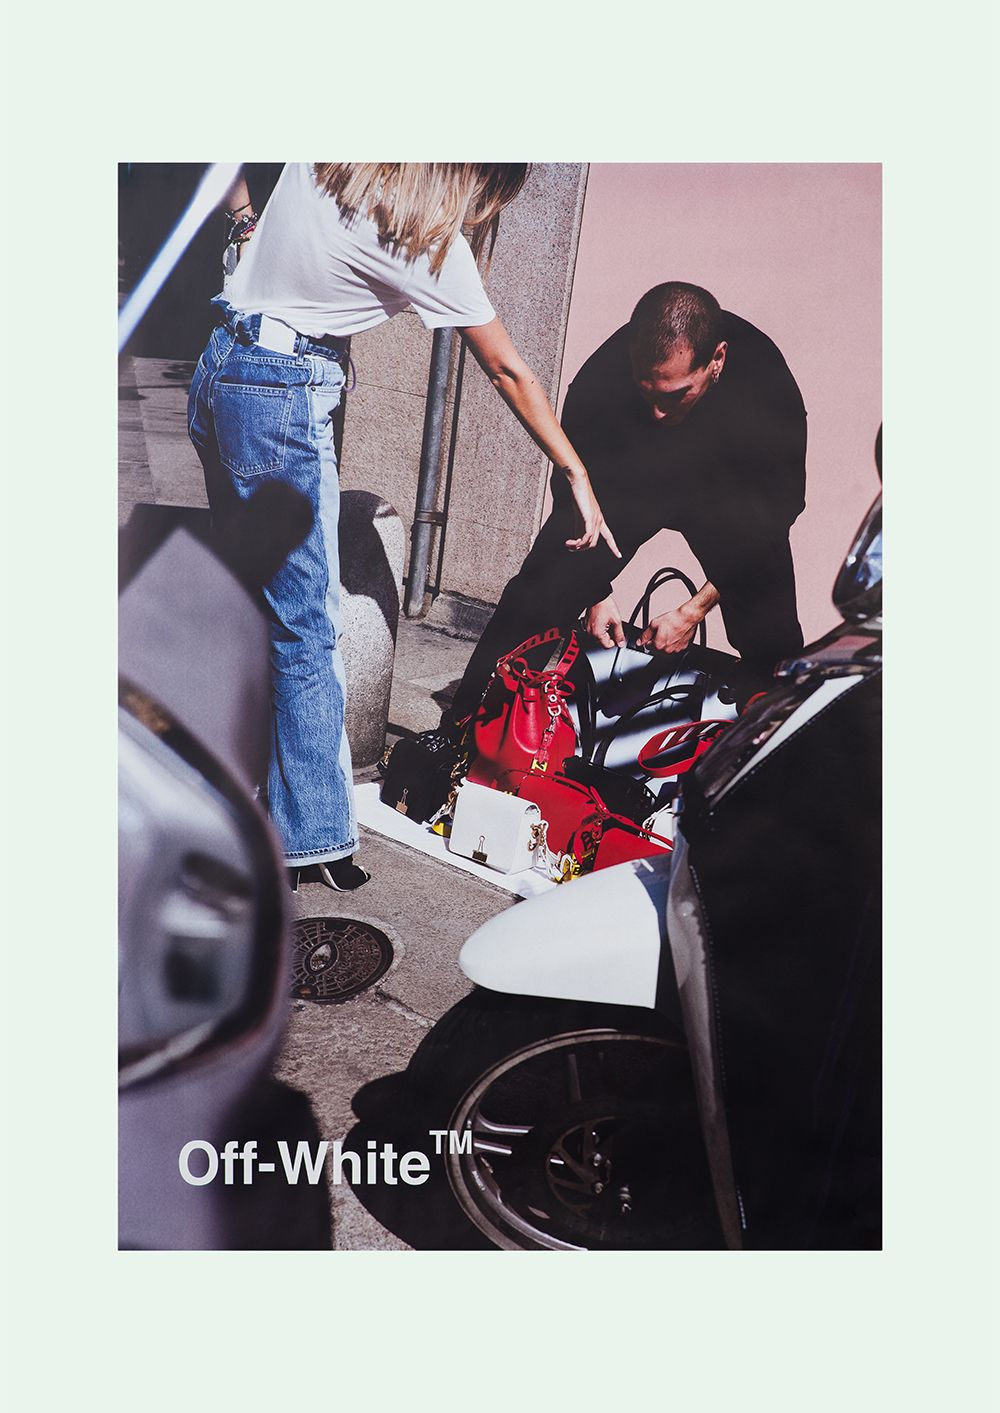 OFF WHITE - Poster - OffWhite